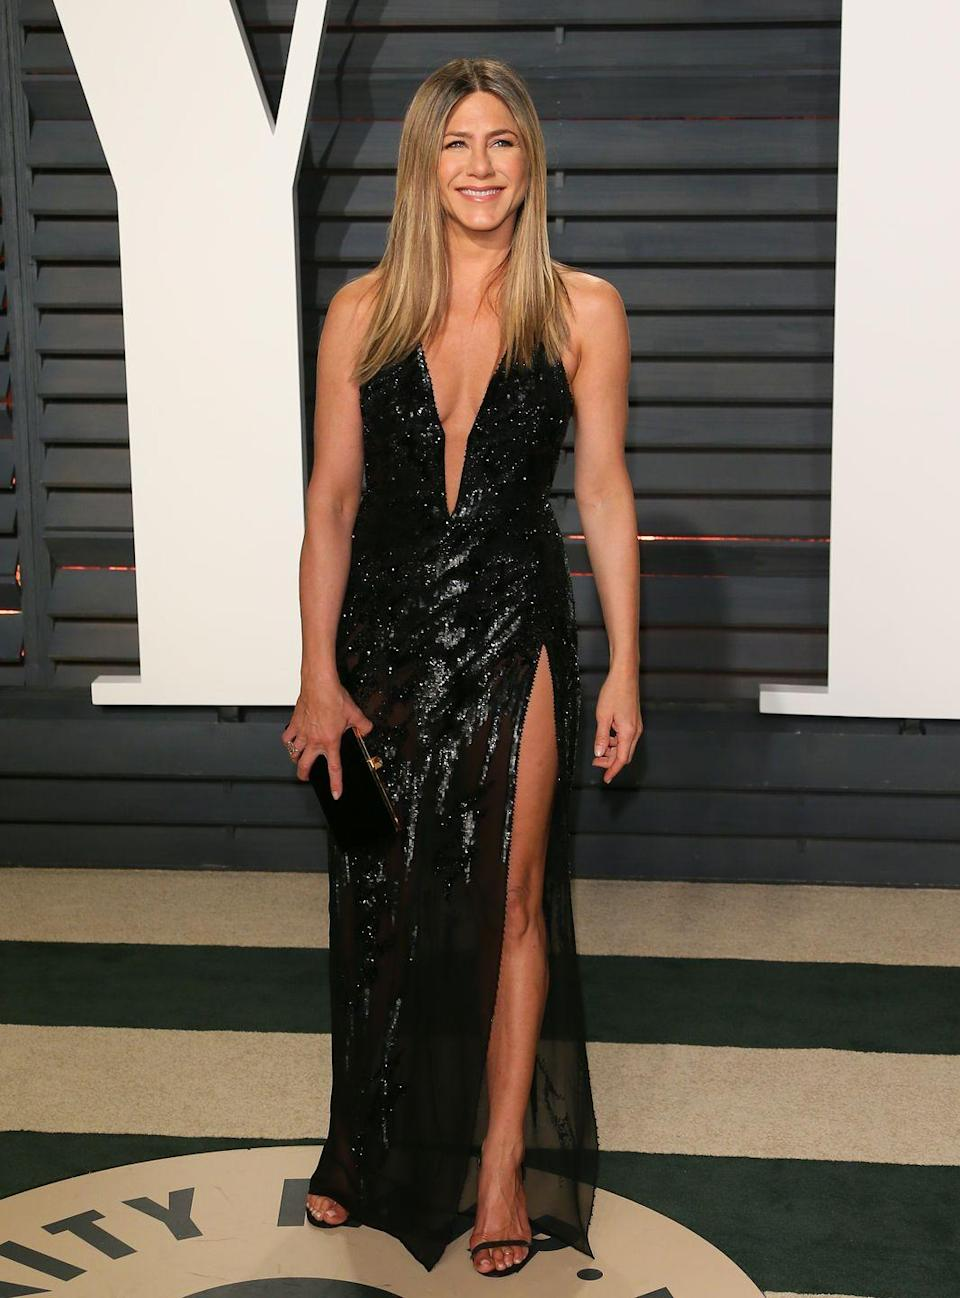 "<p>Jennifer has the same body she rocked during the early days of <em>Friends</em>, but her workouts have only gotten harder throughout the years. According to <a href=""https://www.womenshealthmag.com/fitness/a26280079/jennifer-aniston-birthday-workout/"" rel=""nofollow noopener"" target=""_blank"" data-ylk=""slk:her trainer"" class=""link rapid-noclick-resp"">her trainer</a>, Leyon Azubuike, Jennifer loves to box—and I have a feeling she has a mean right hook.</p>"